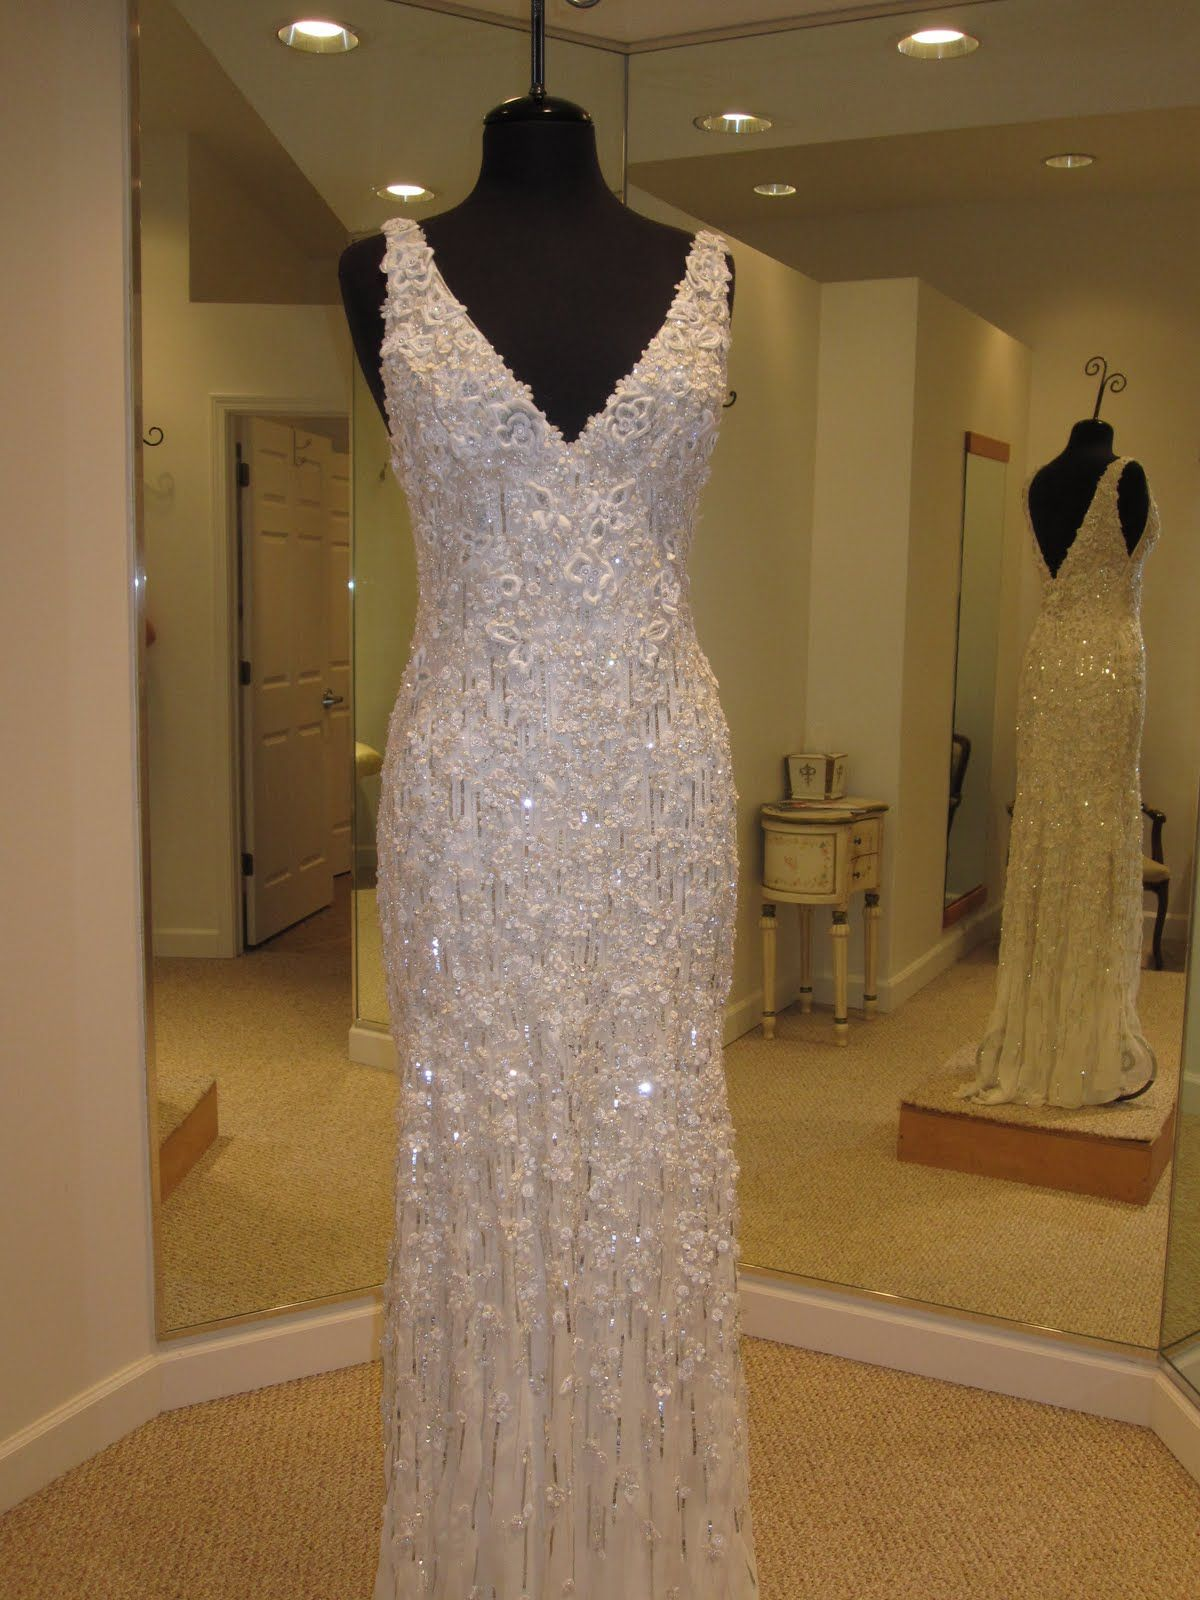 Bridal gowns for older brides over 40 divine dresses for second bridal gowns for older brides over 40 divine dresses for second weddings brides blog ombrellifo Gallery